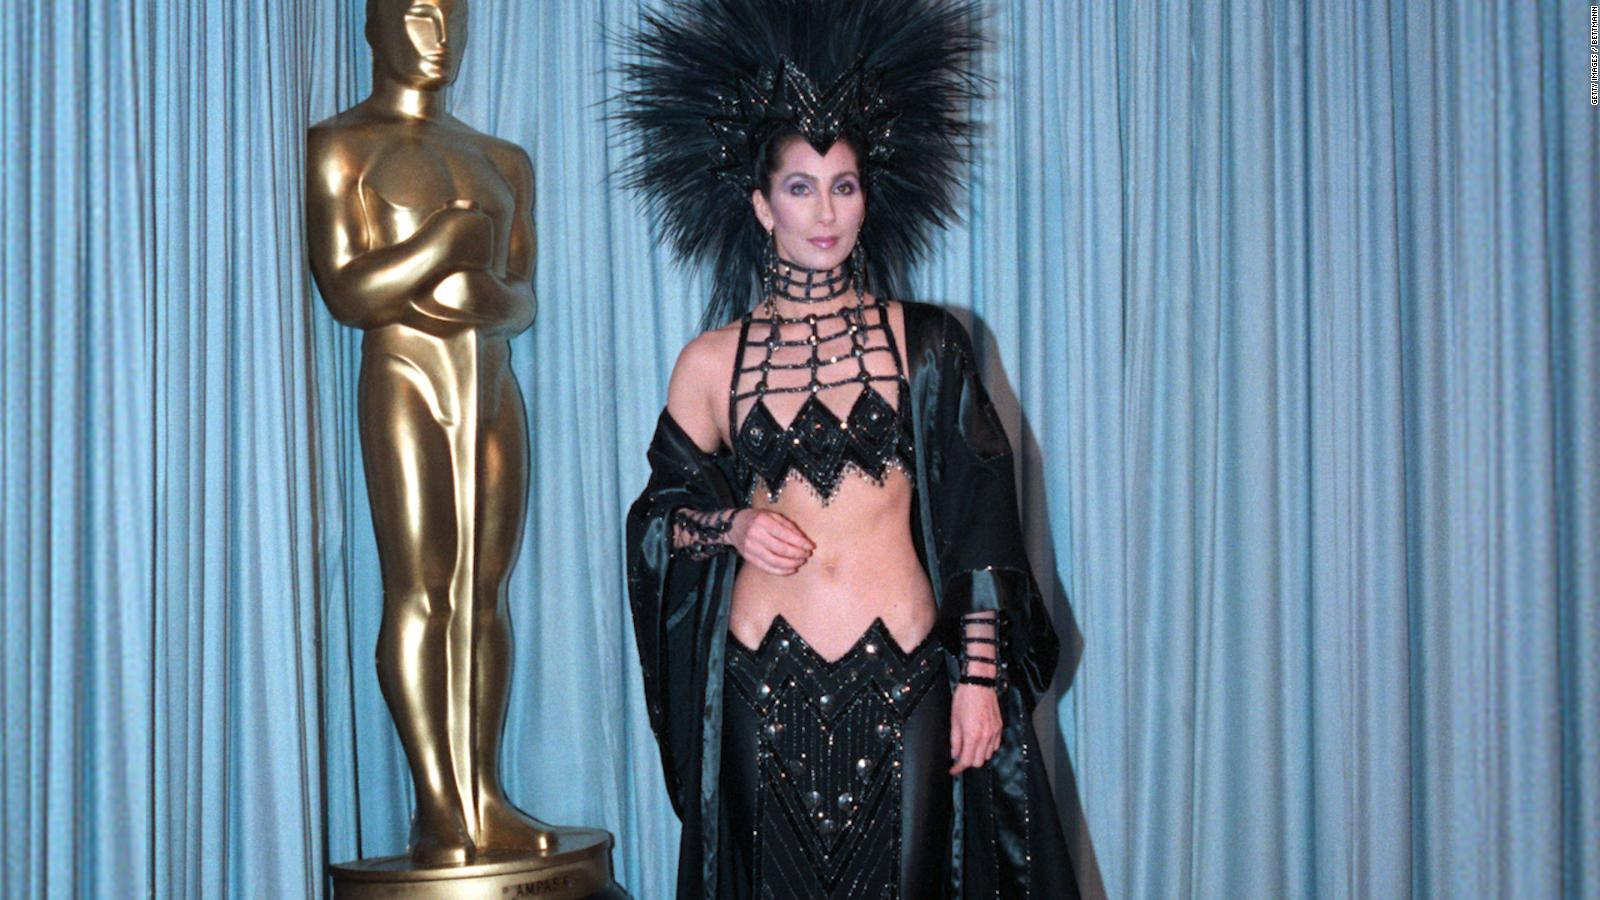 Cher's towering feather headdress at 1986 Oscars made a statement - CNN  Style